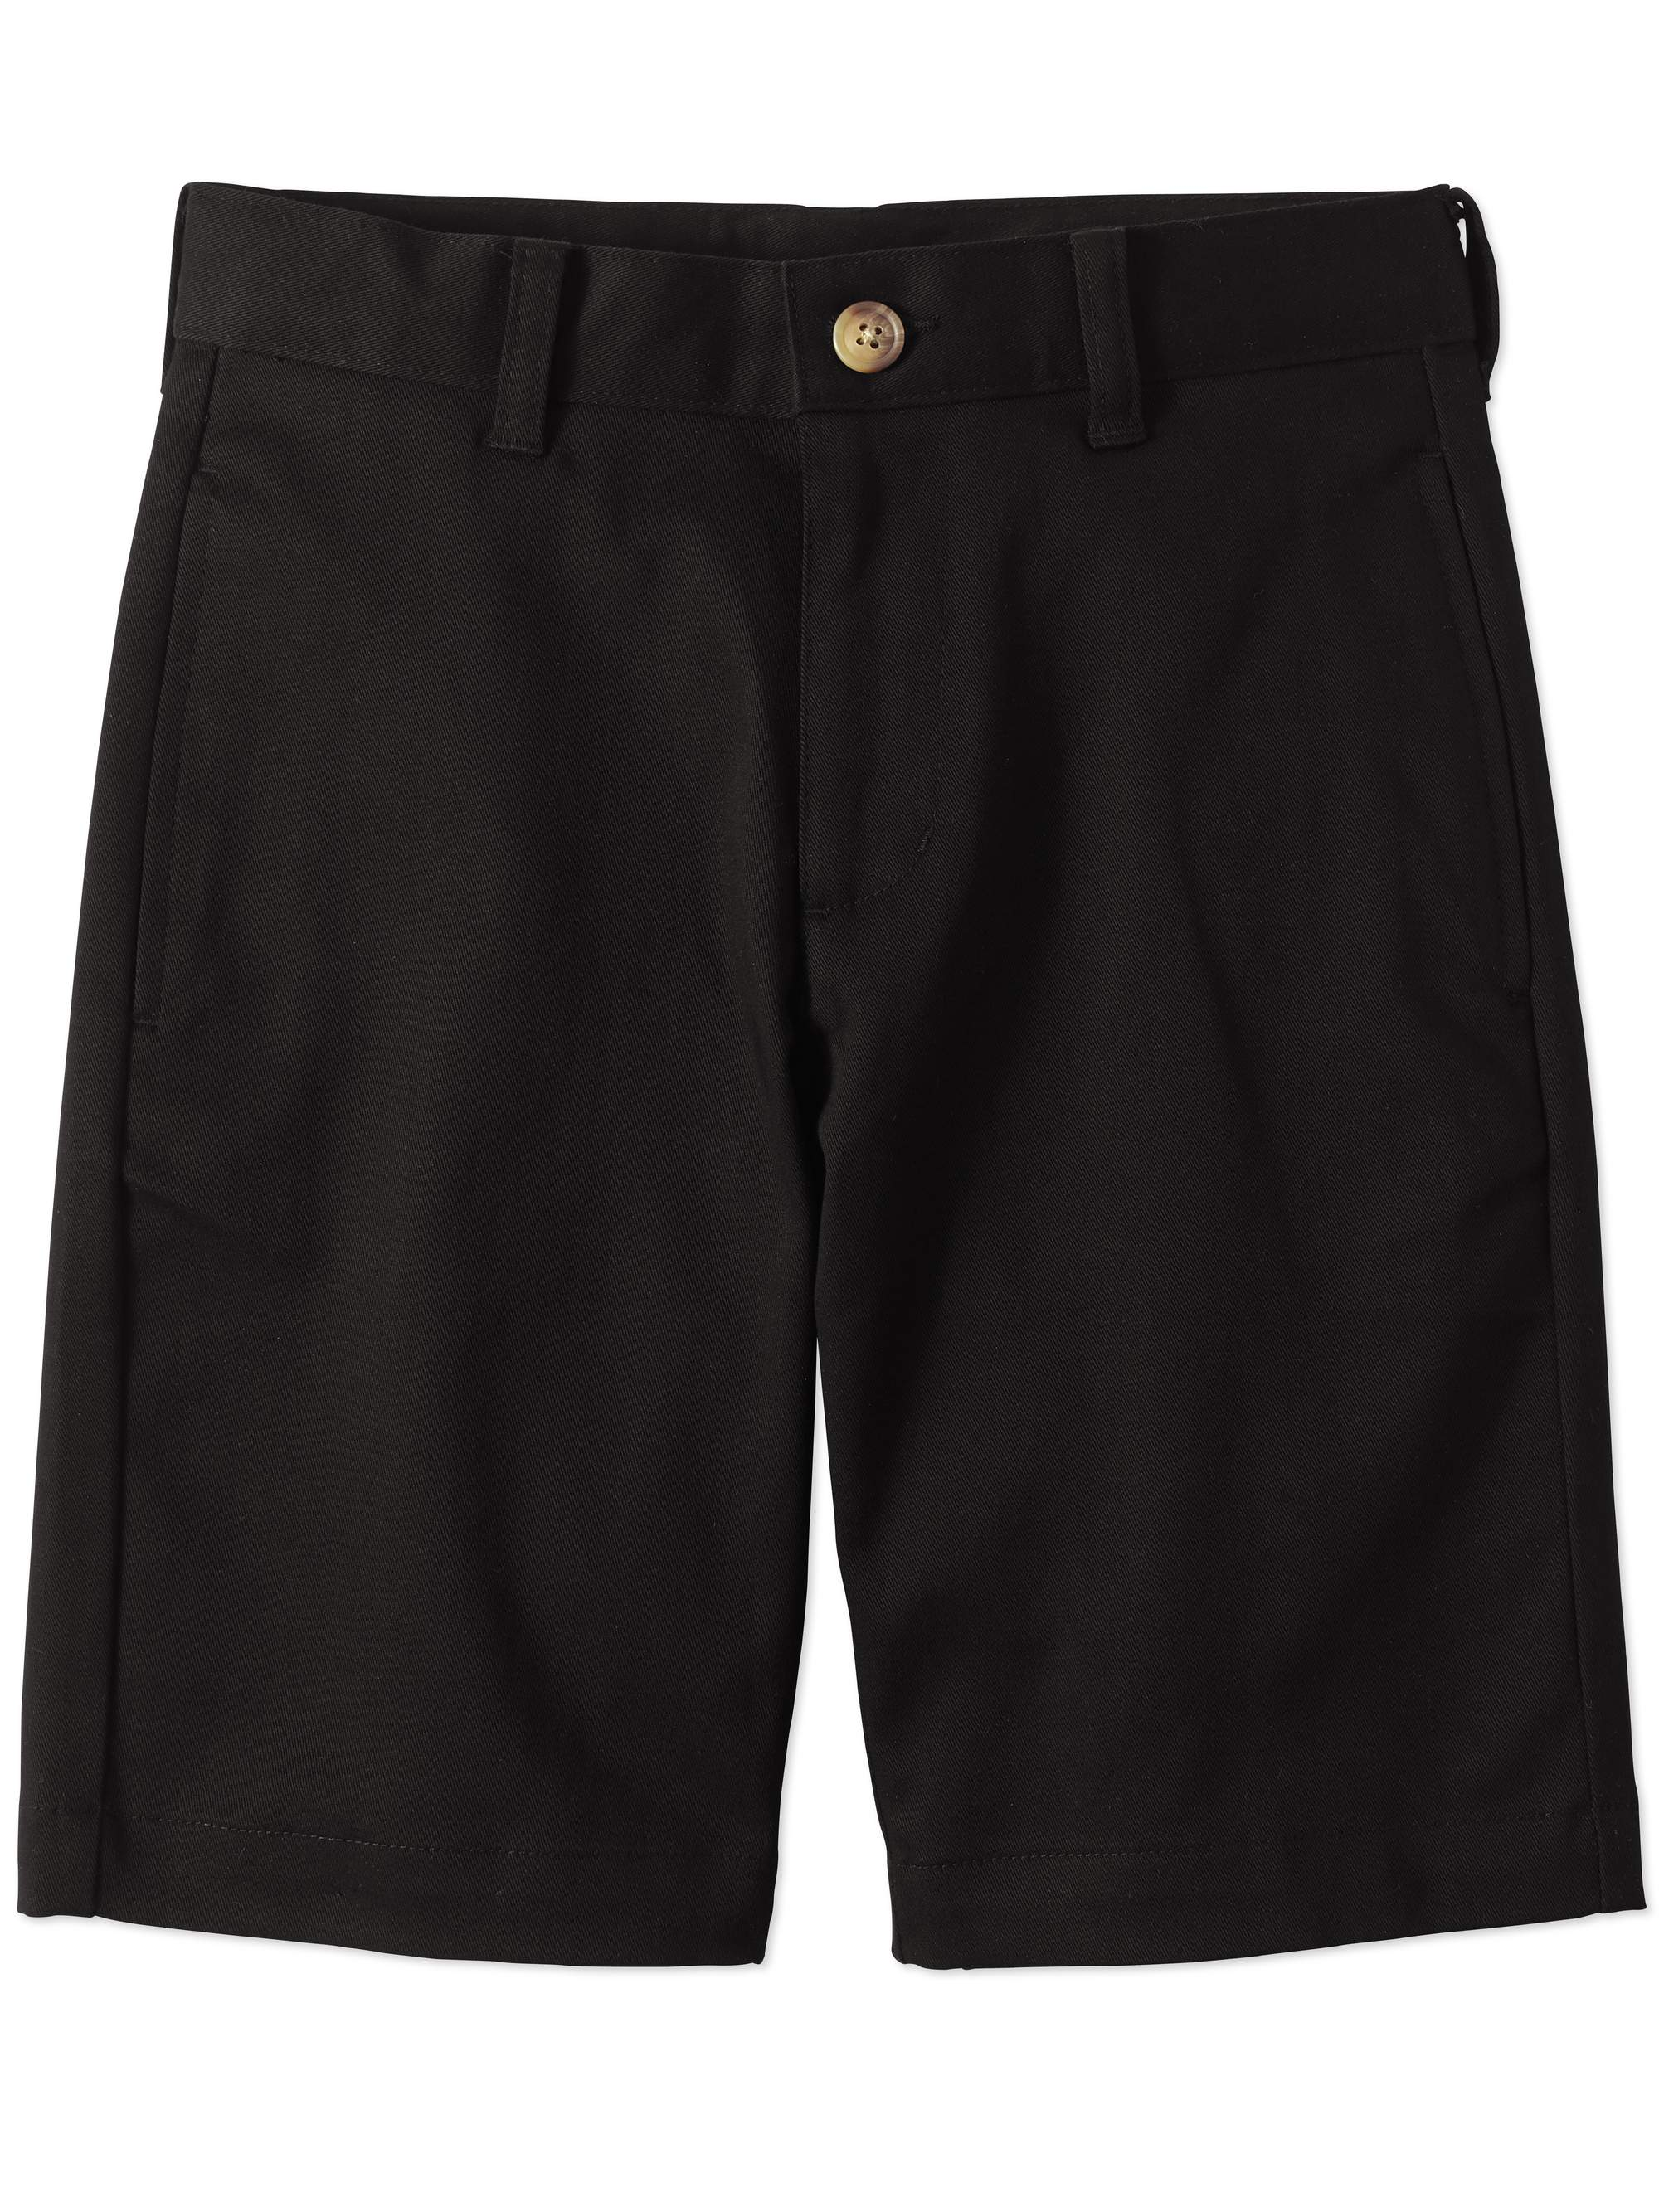 Boys School Uniform Super Soft Flat Front Shorts